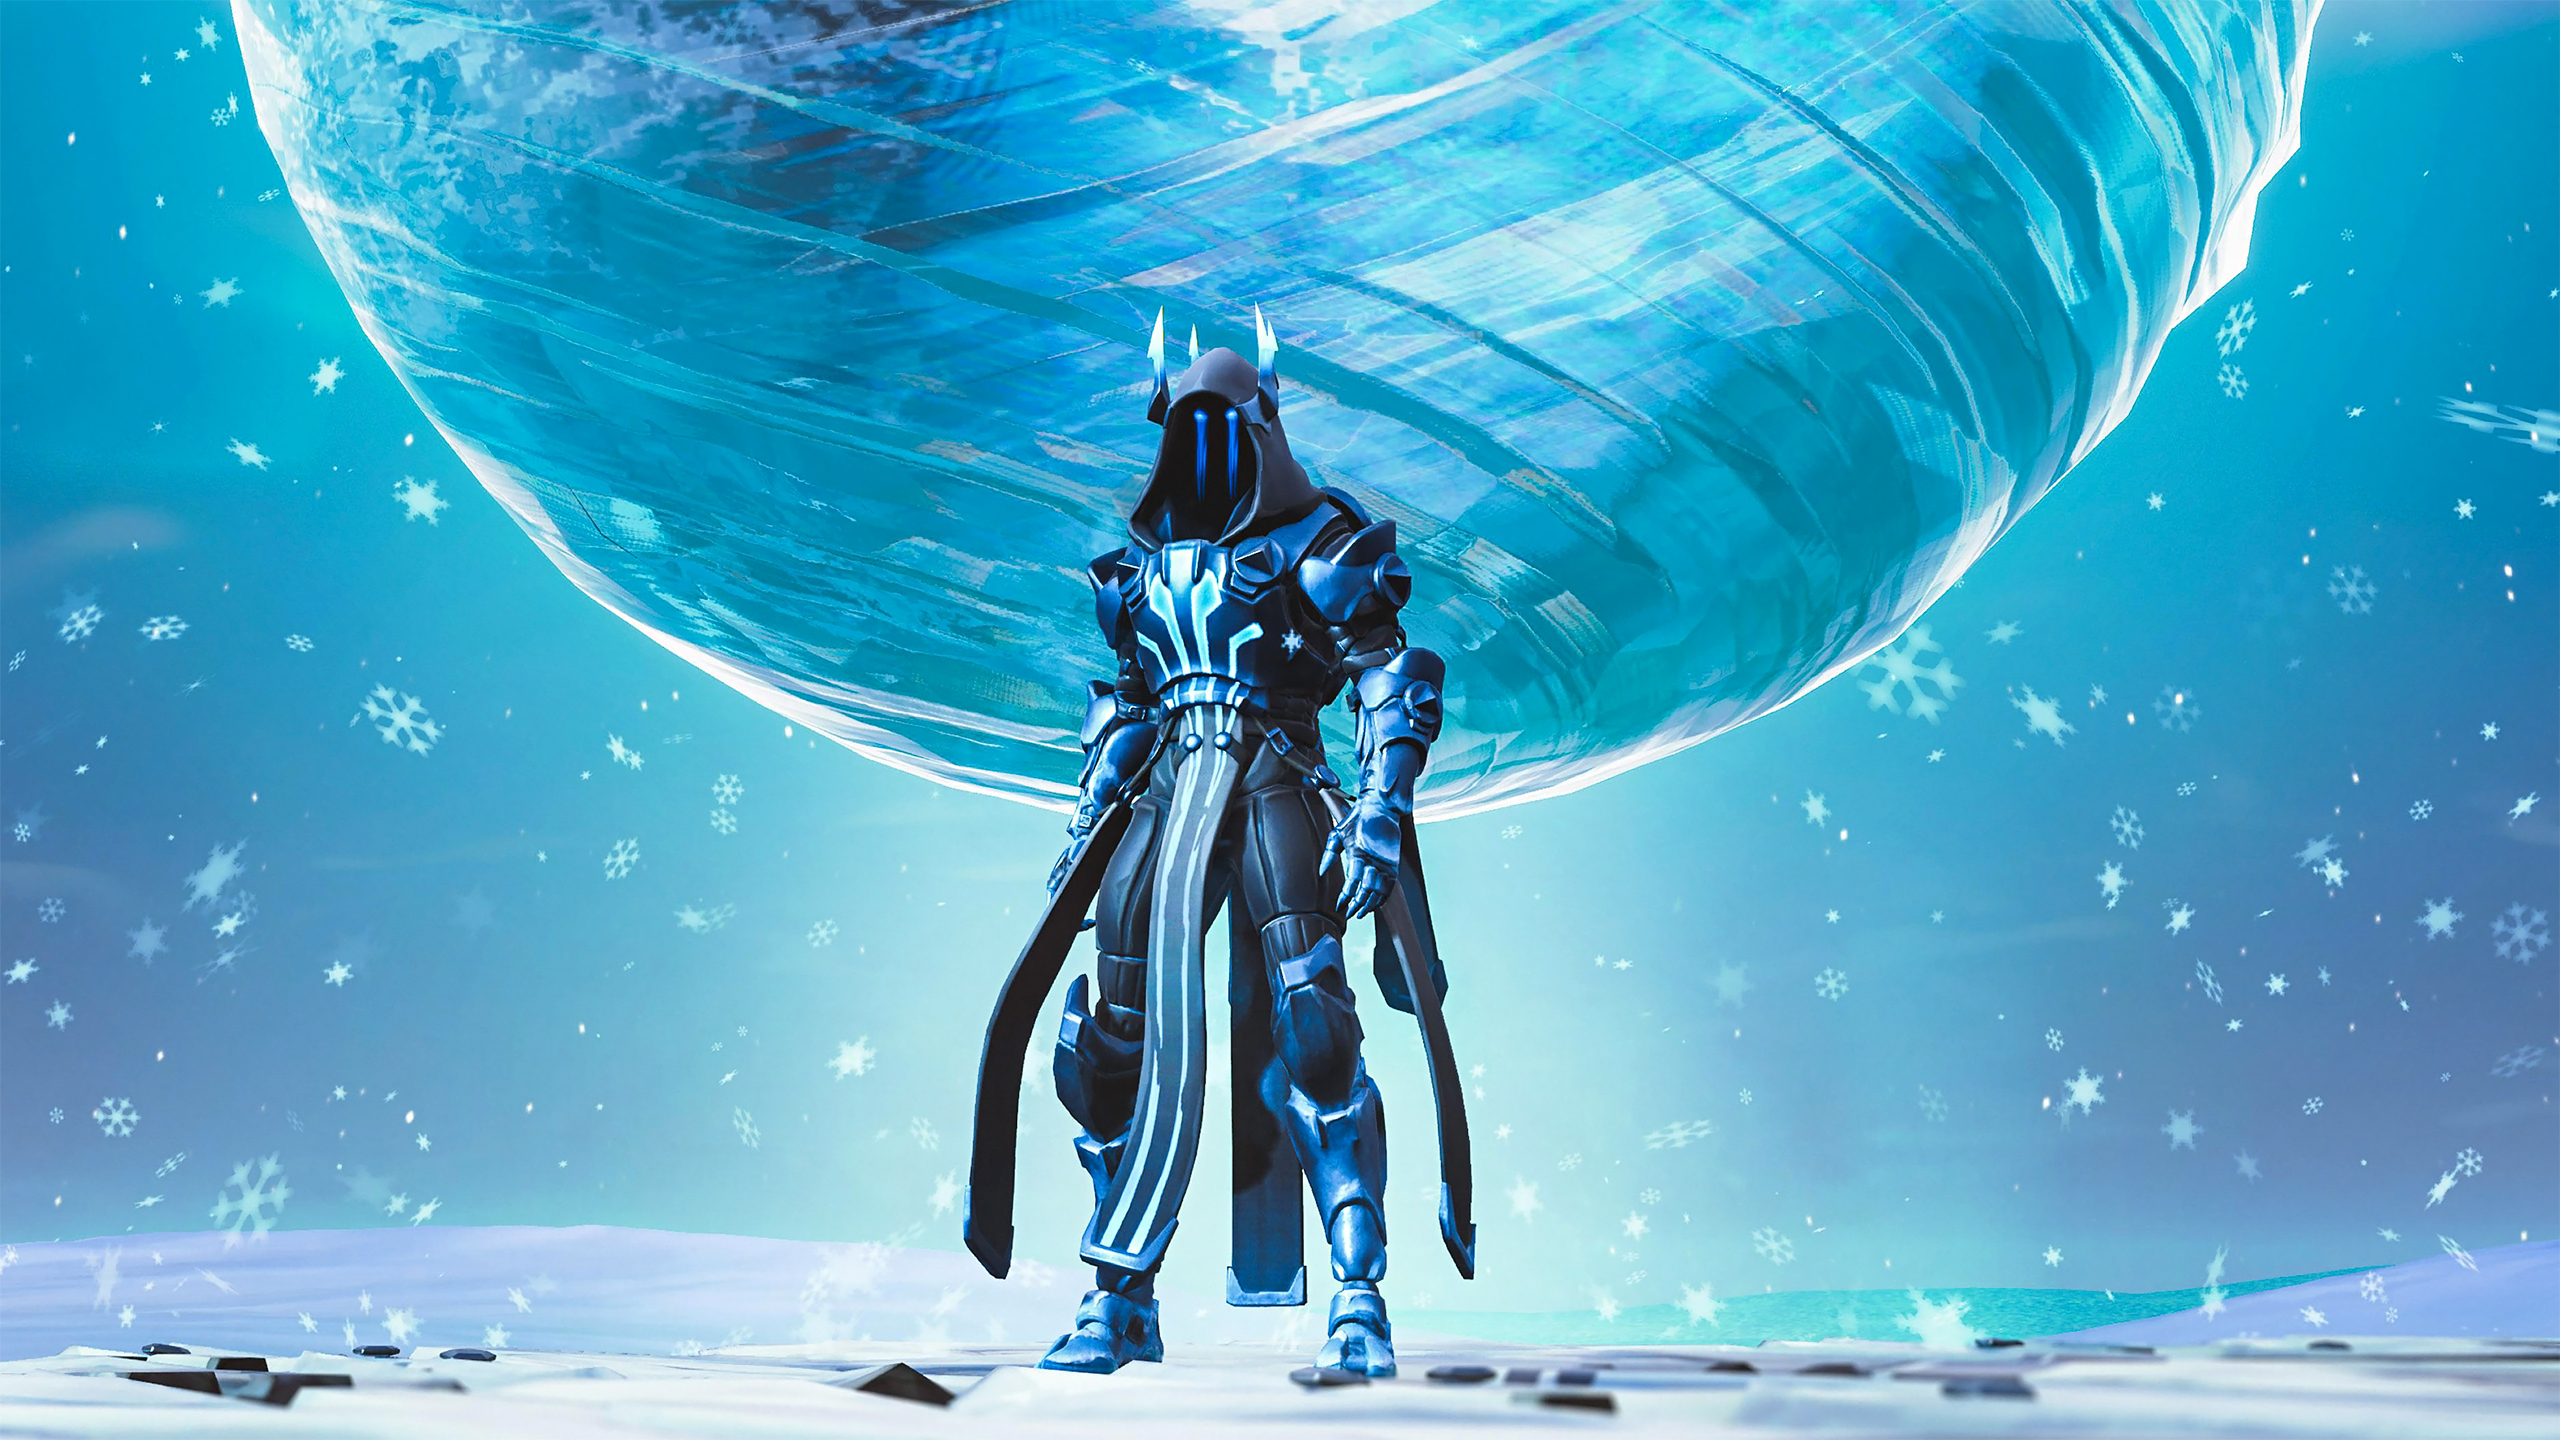 Fortnite Ice King Wallpaper 2k Quad Hd Id3767